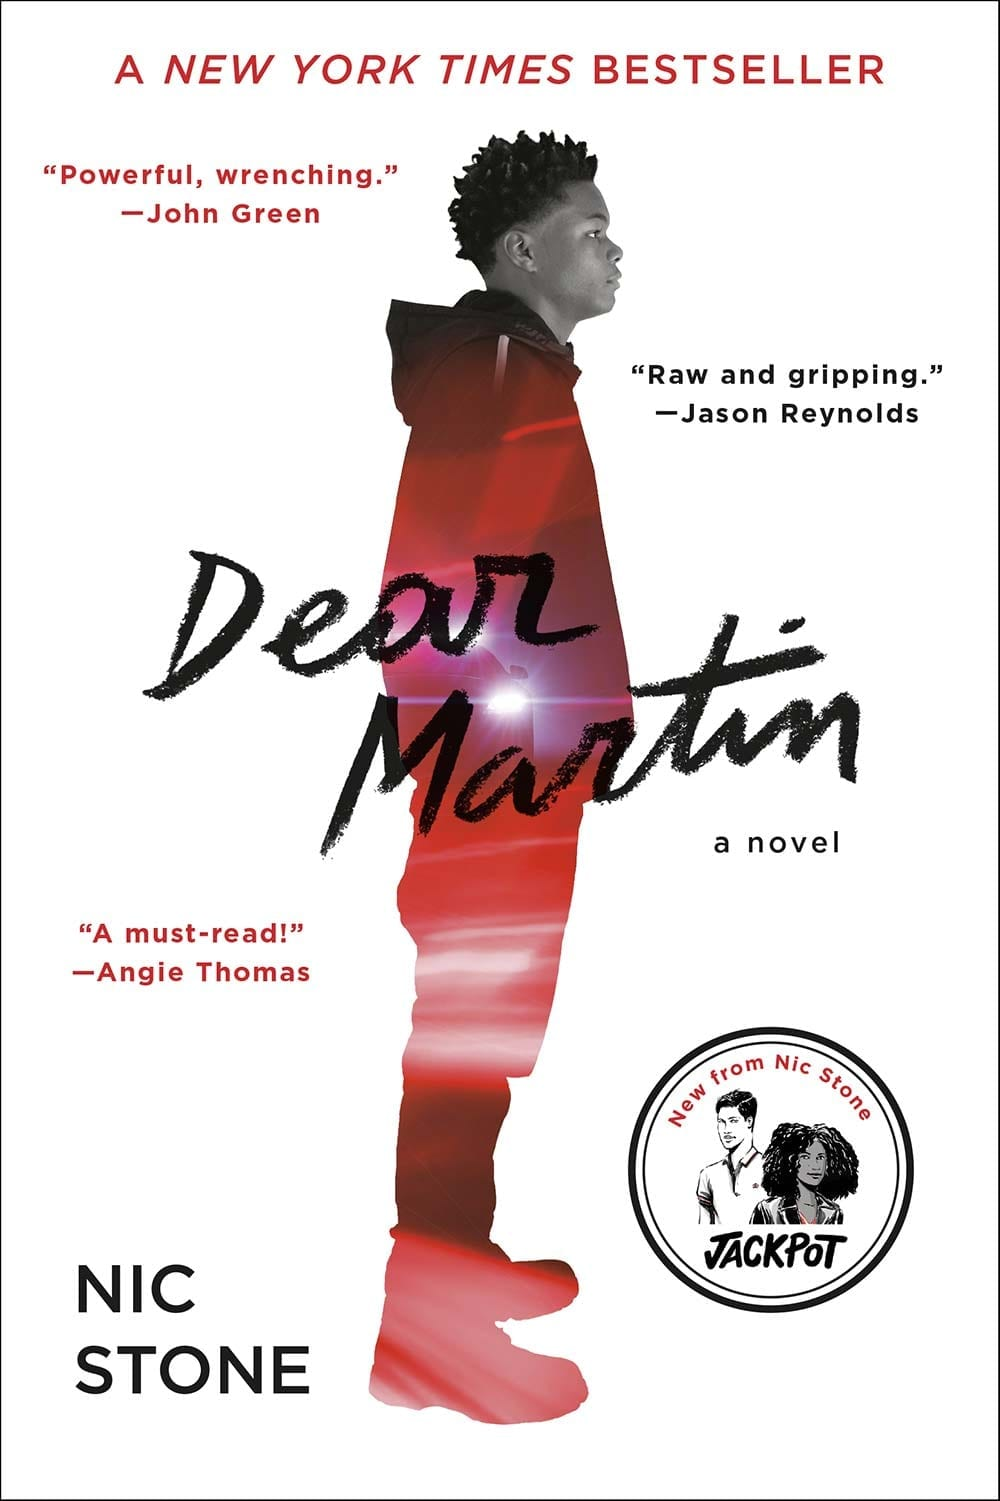 Justyce is heading to Yale and has a promising future, once he navigates growing up black in Dear Martin by Nic Stone.  #Books #YABooks #YA #BlackLivesMatter #Reading #BookBlogger #DearMartin #NicStone